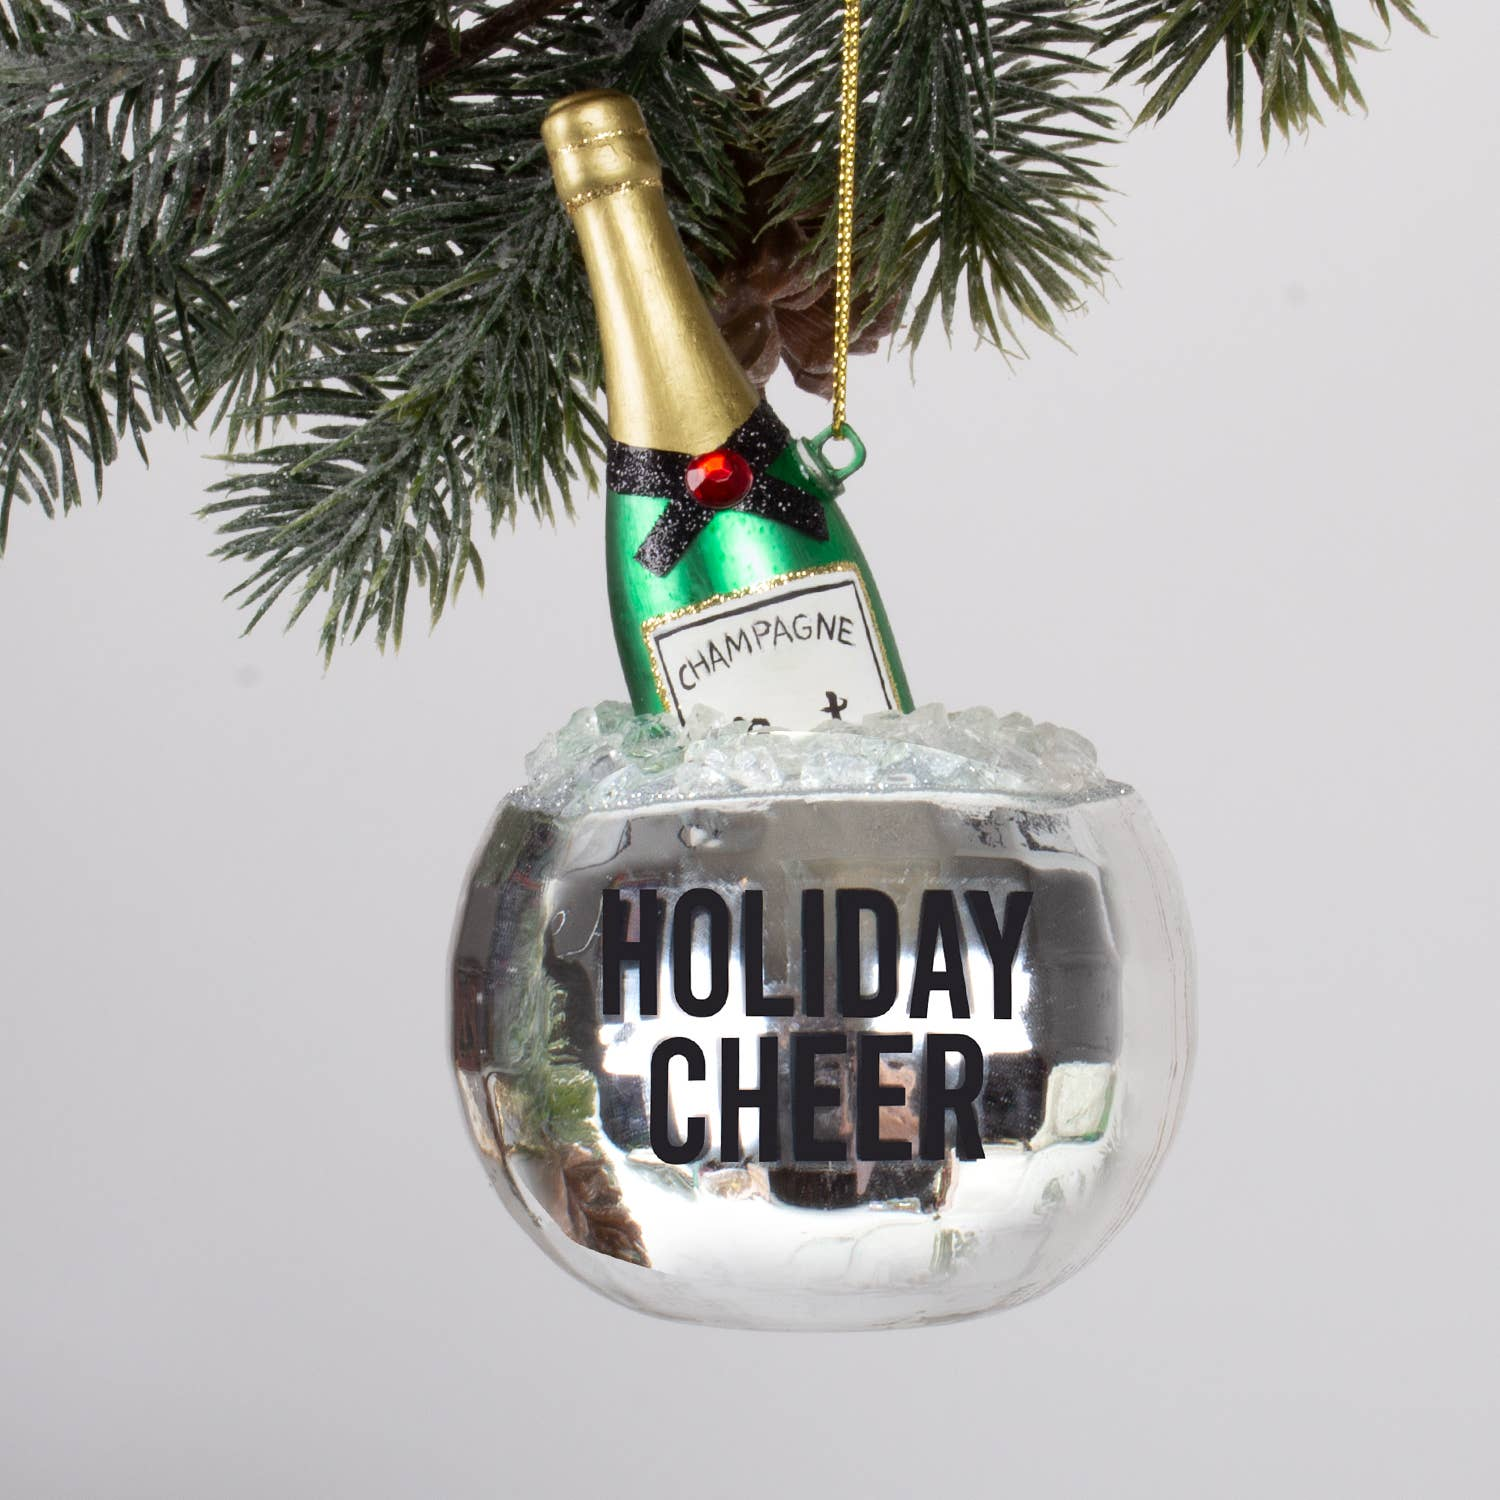 "The disco ball ice bucket and champagne bottle take you from Christmas all the way to New Years Eve. Add some holiday cheer to the holiday tree!  Made of glass. 6"" X 2.5"" X 2.5"" Comes in retro style gift box."